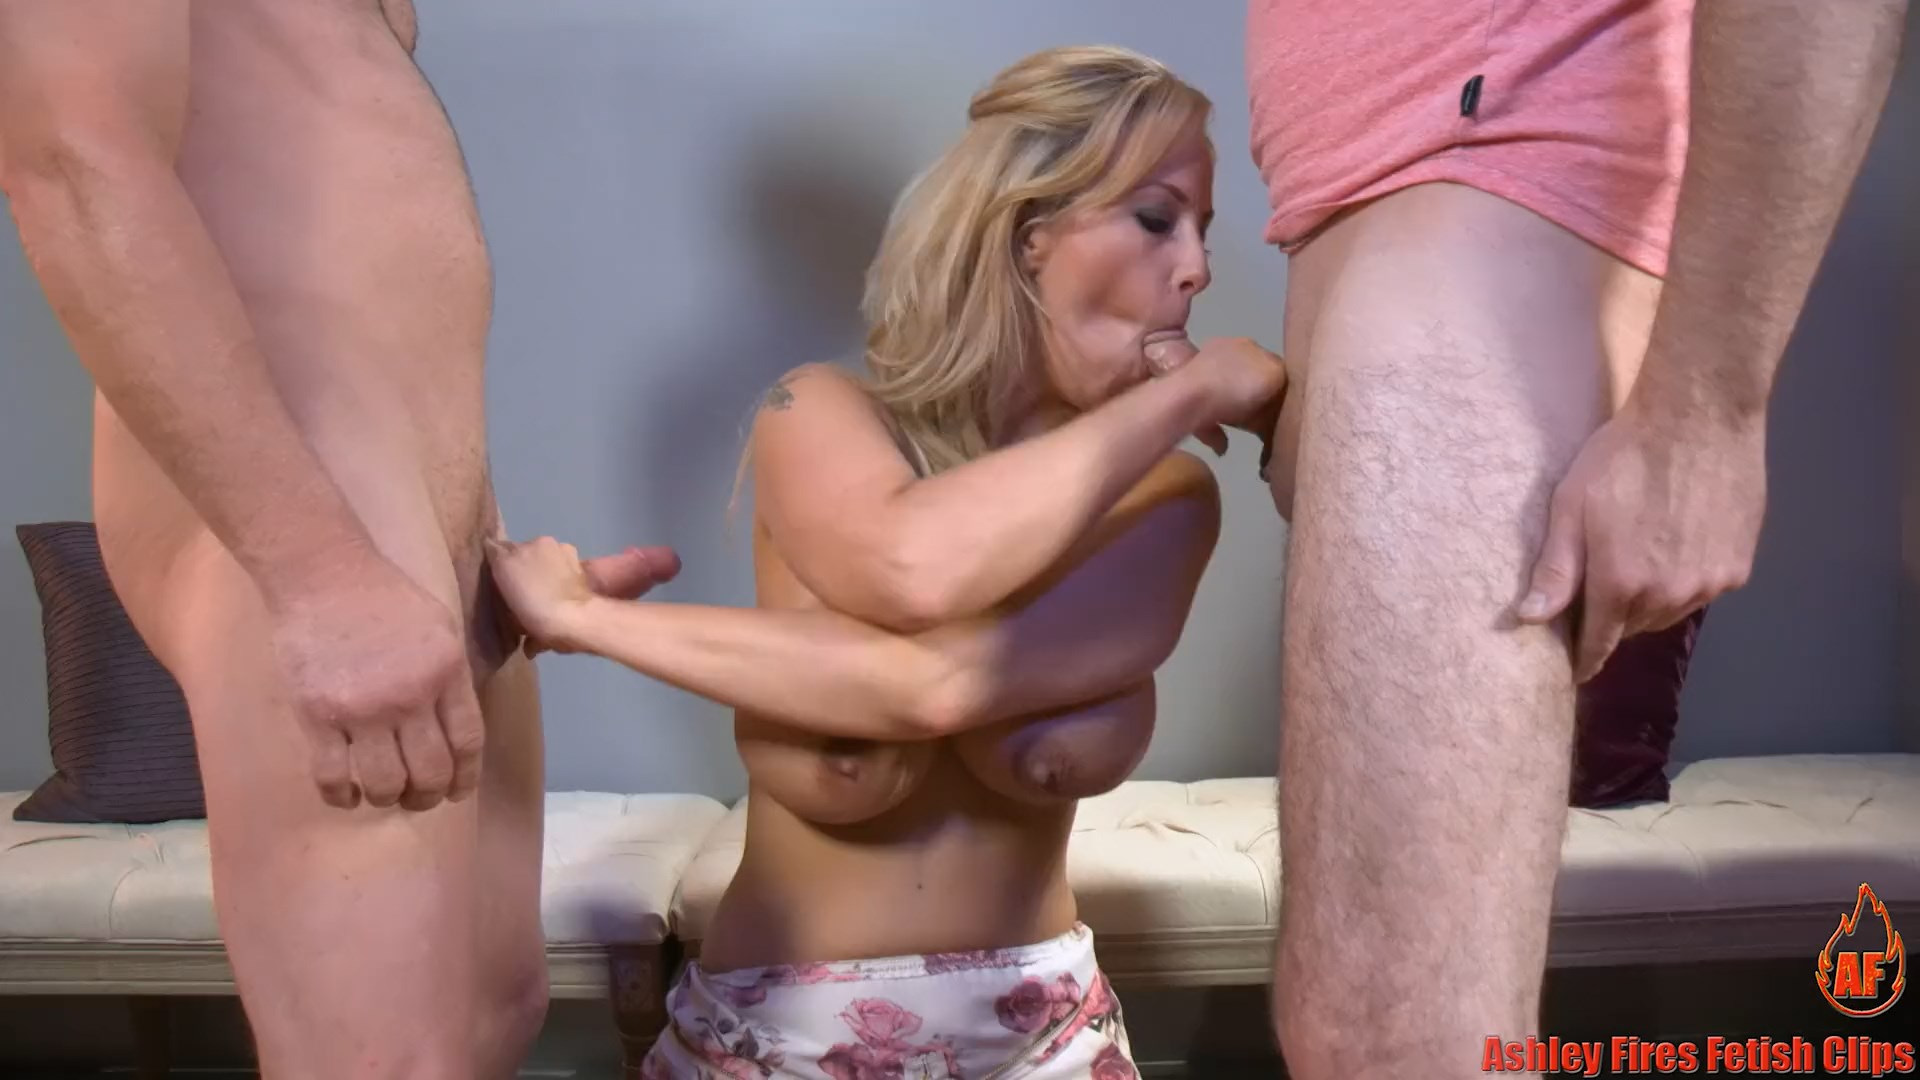 Ashley Fires Fetish Clips - My Three Sons - Modern Taboo Family - Krystal Star